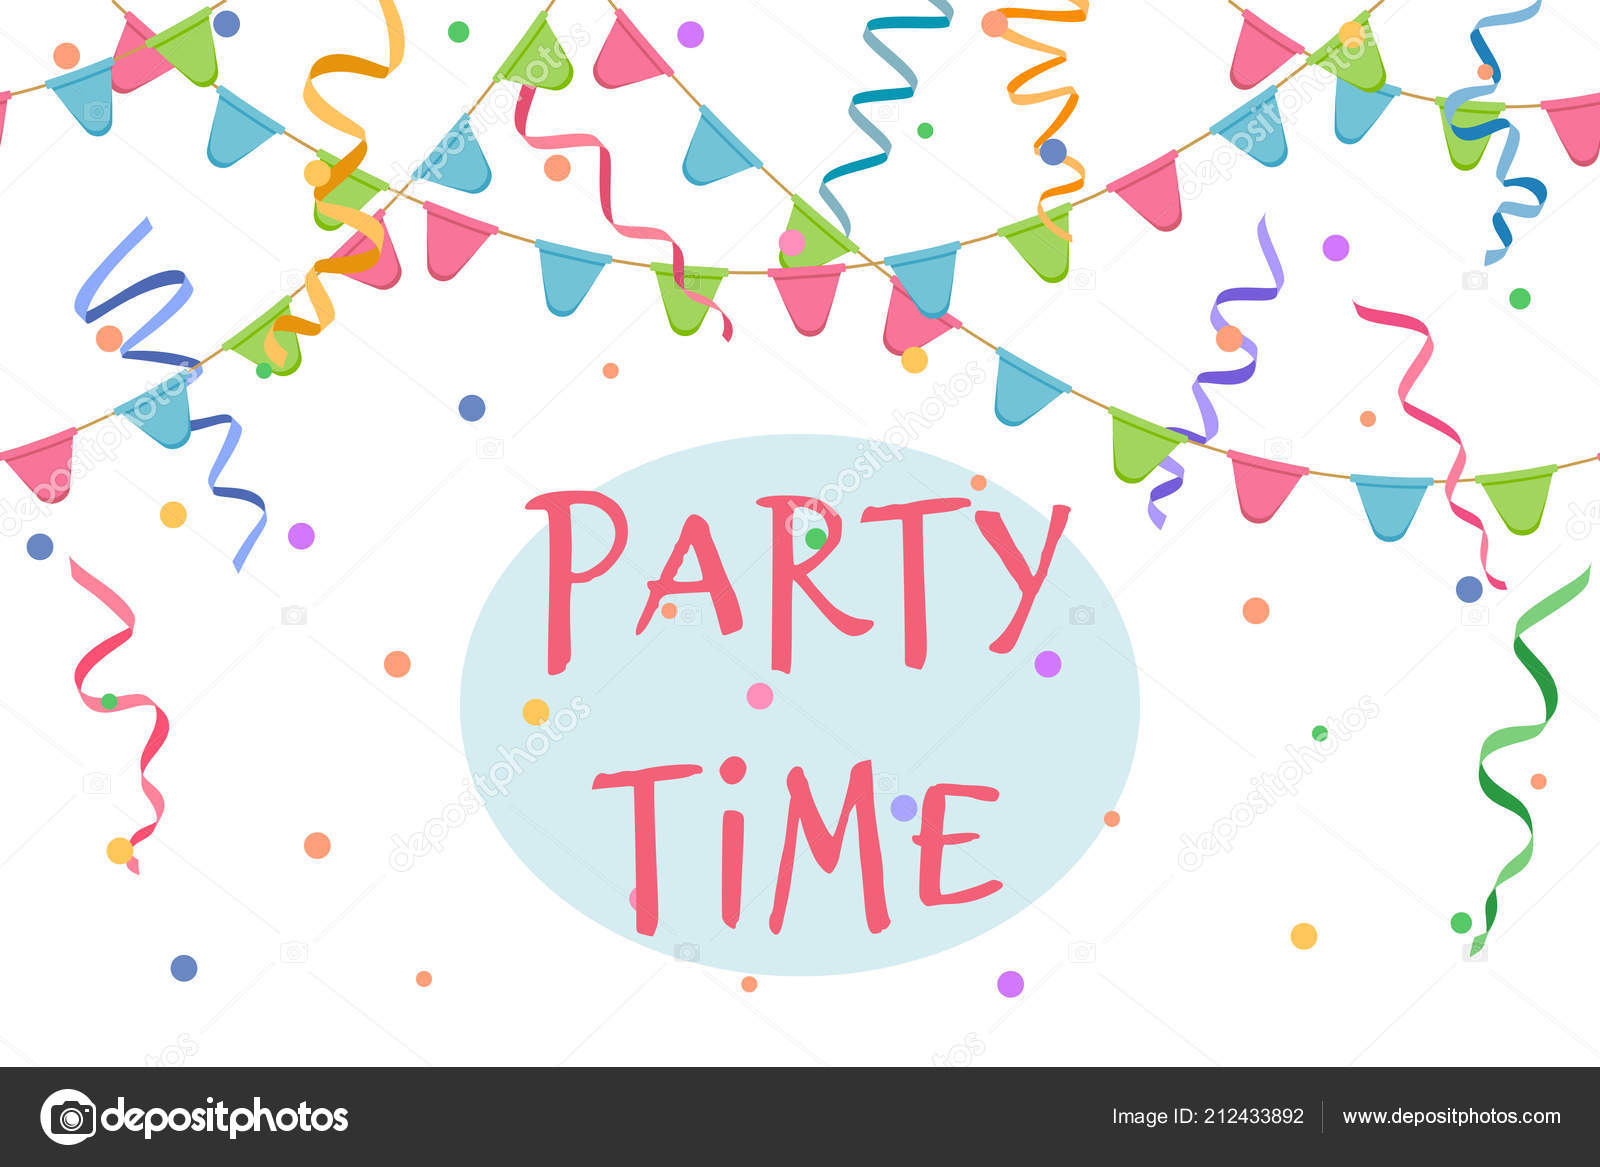 Party Time Party Time Sign Serpentine Background Confetti Flags Cheerful